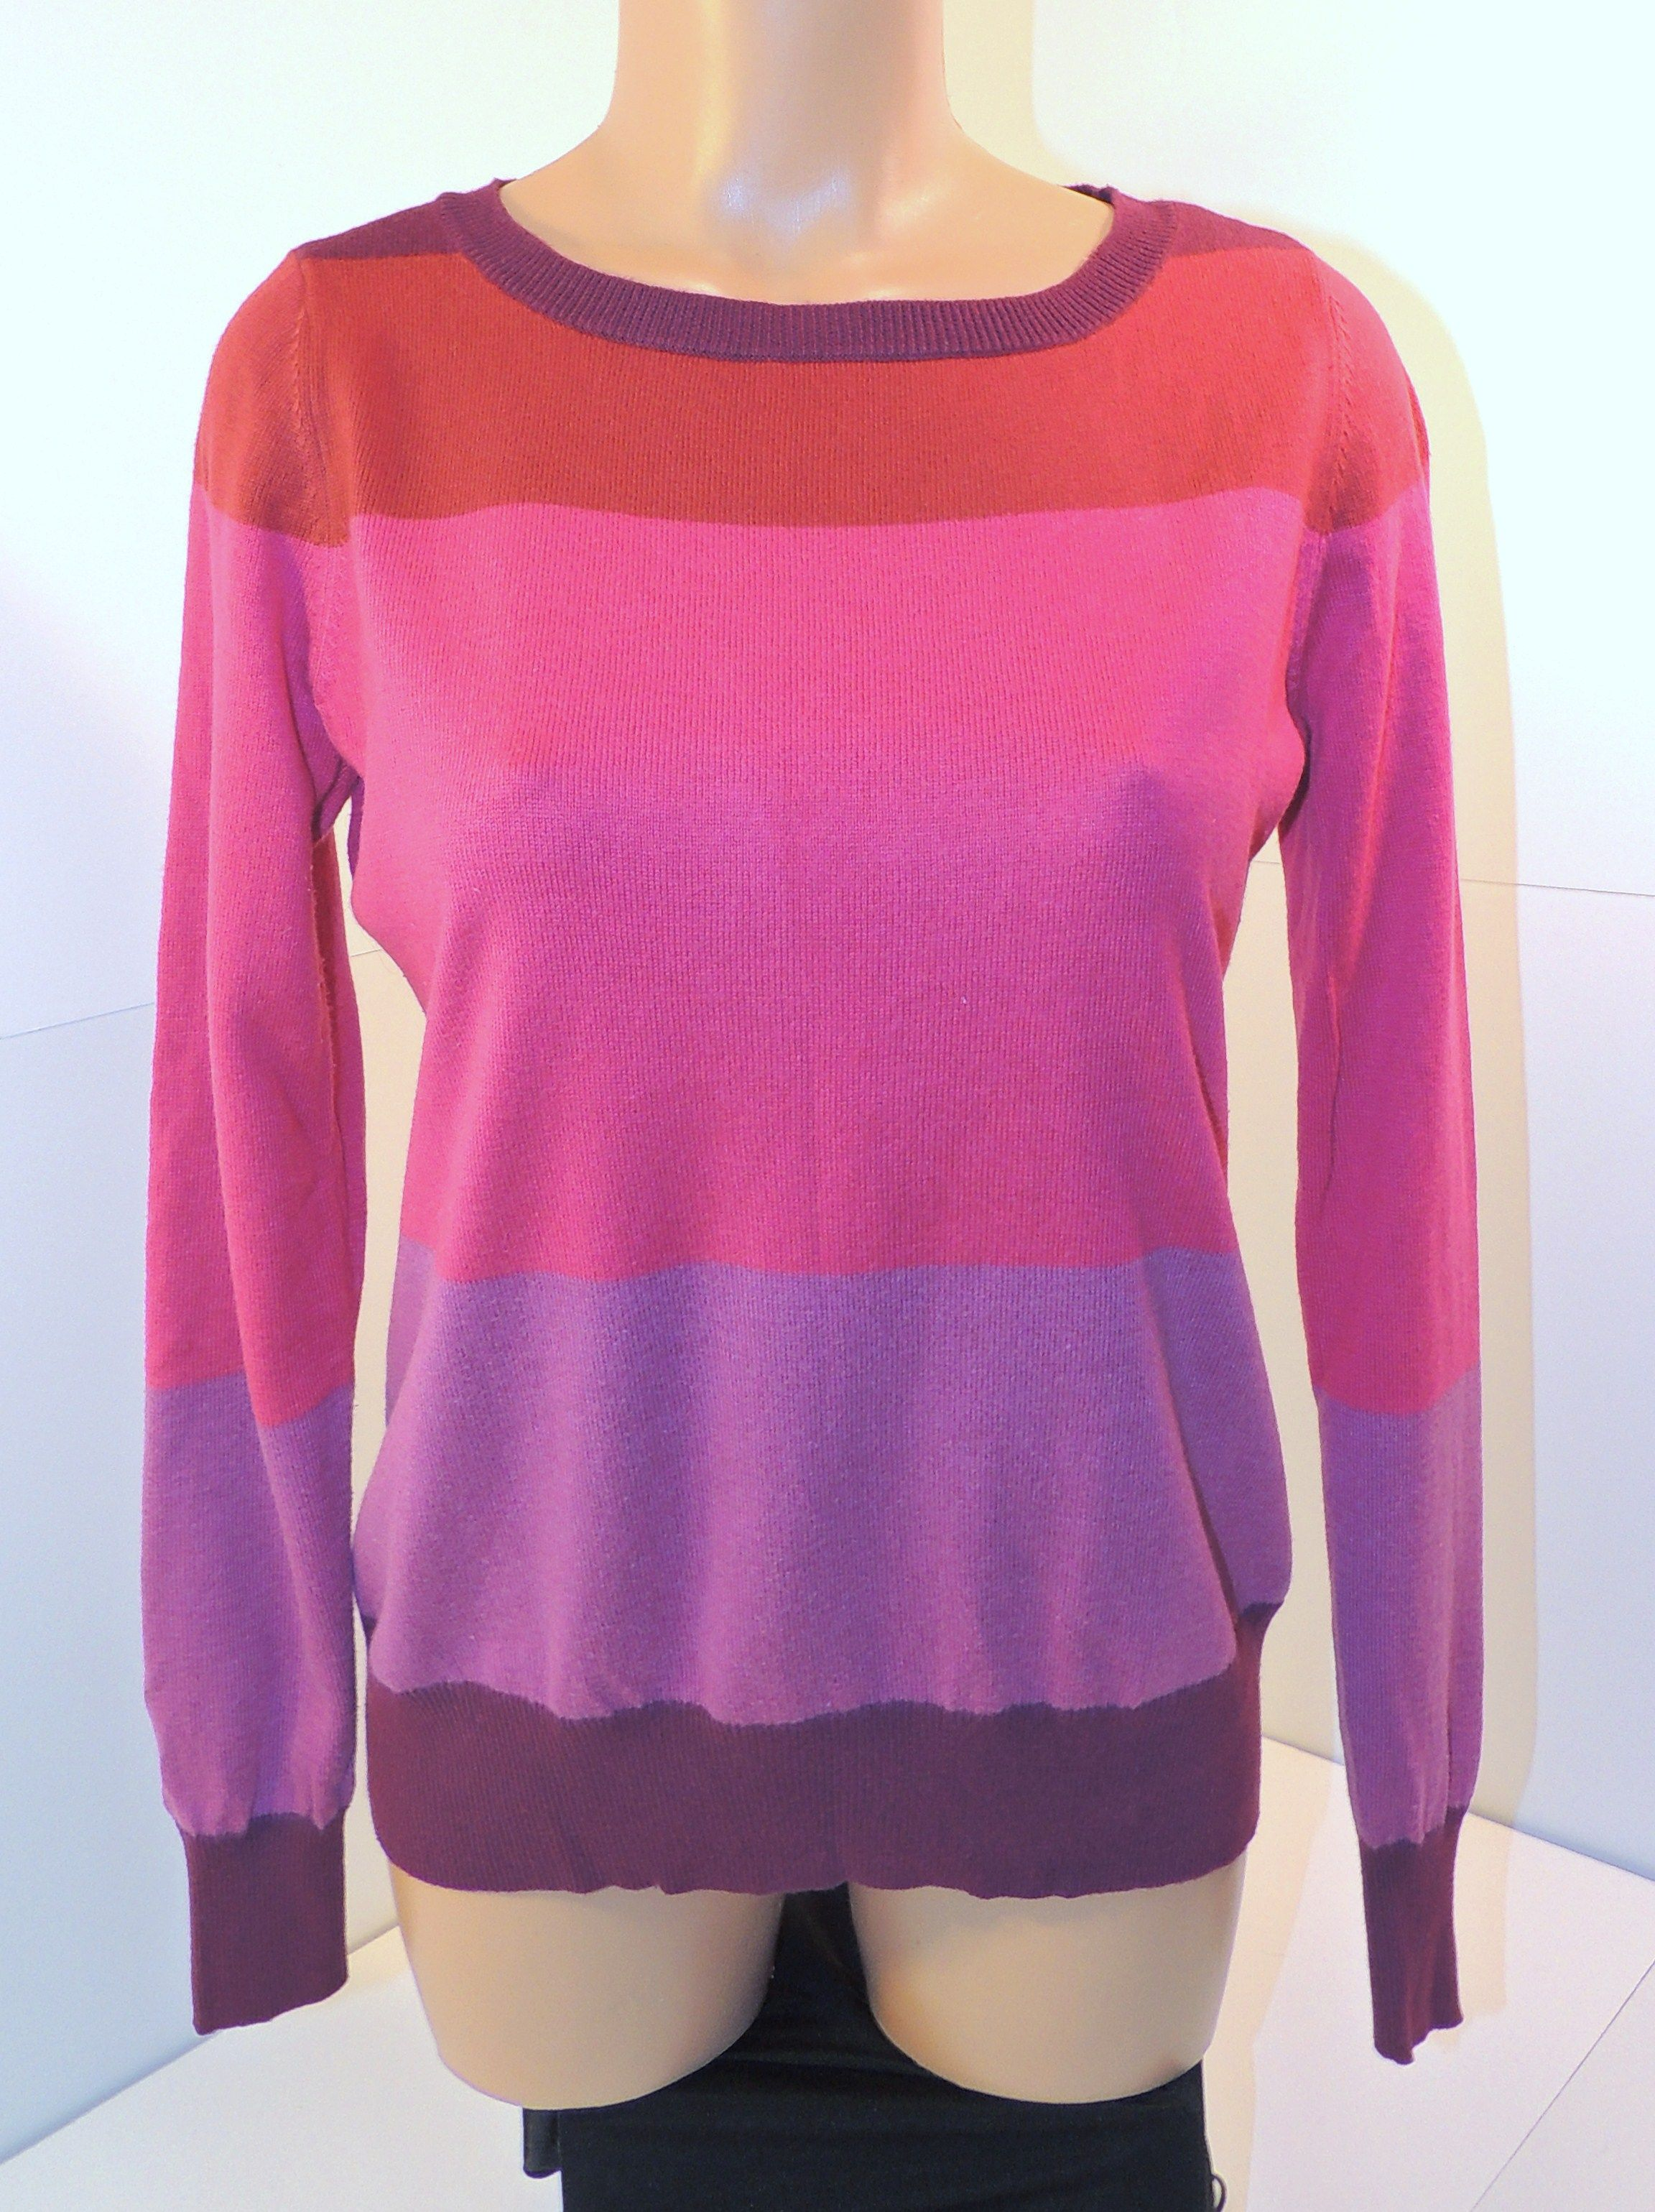 Liz Claiborne Women's Pink & Purple Striped Long Sleeve Top Shirt ...